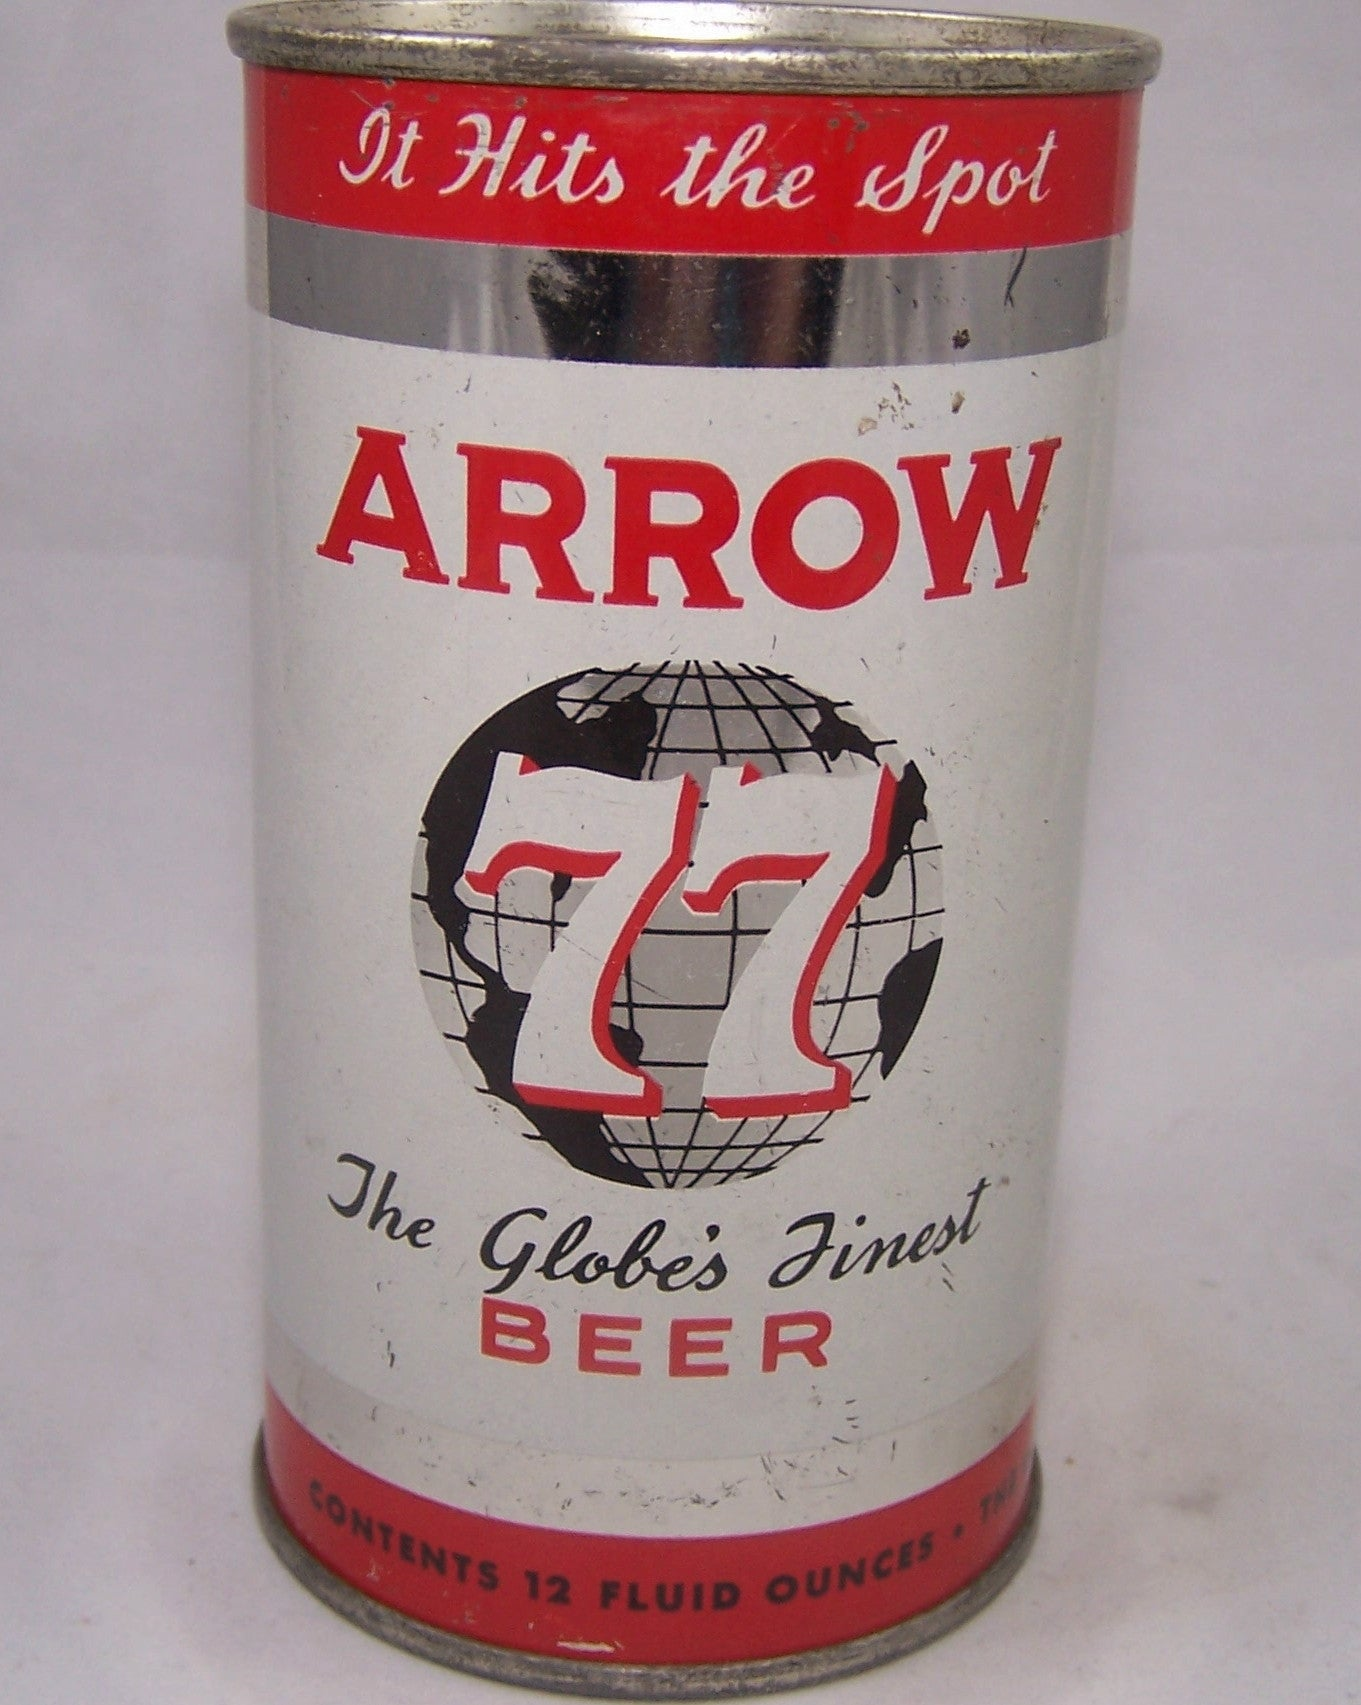 Arrow 77 (It Hits The Spot) Beer, USBC 32-08, Grade 1 Sold on 09/01/19